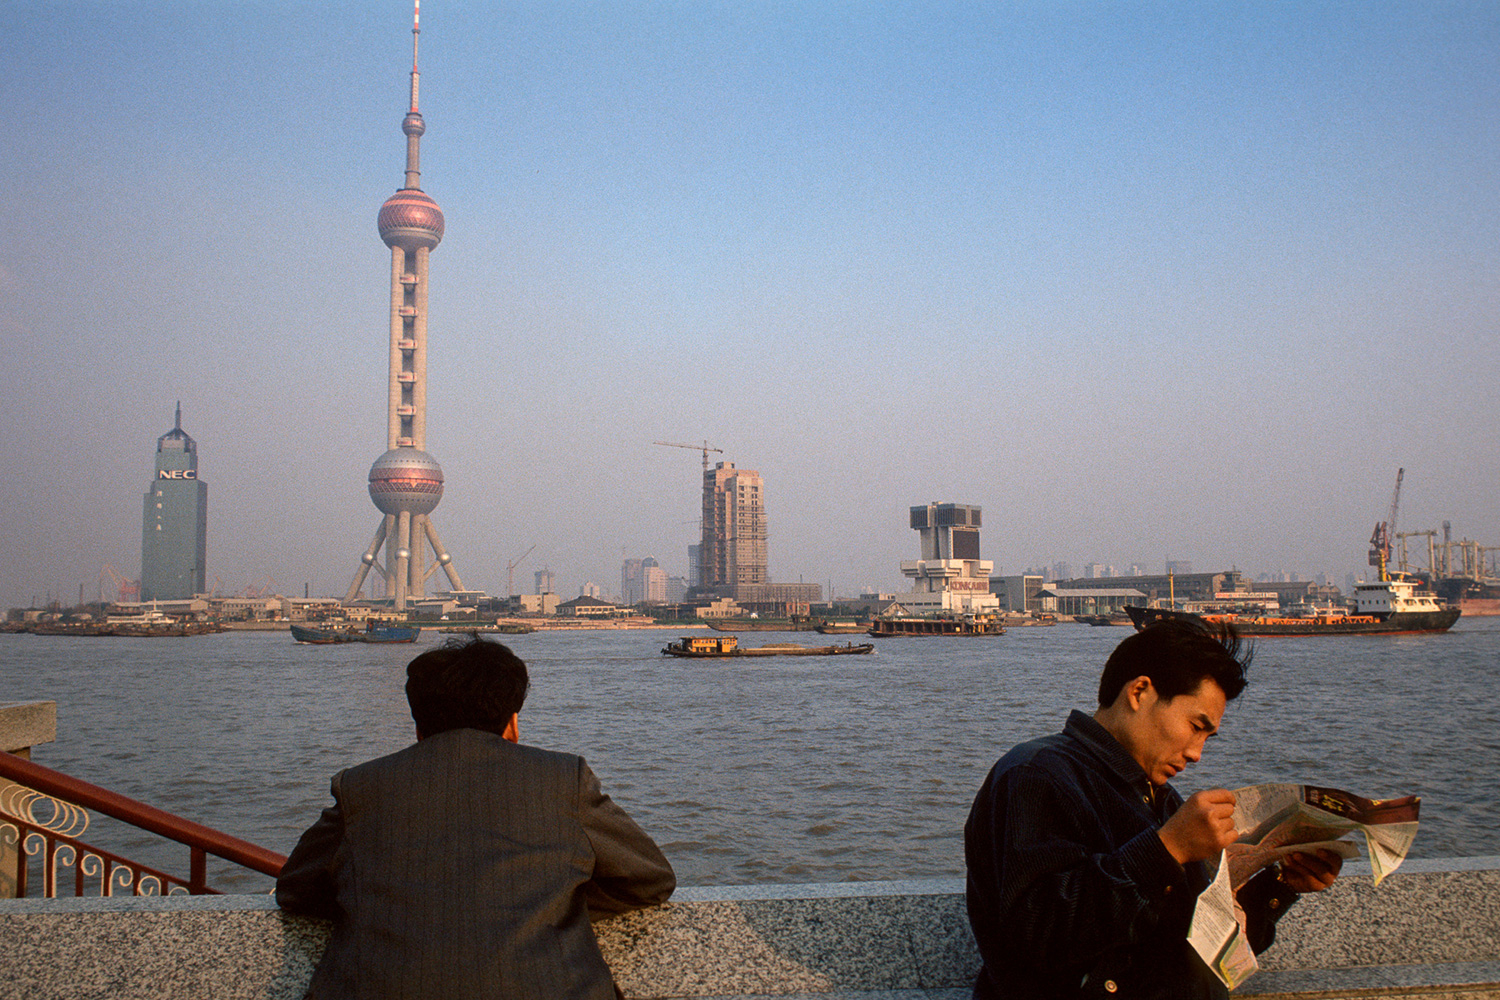 View of the Pudong New Area in 1994 seen from Puxi Bund, across the Huangpu River.